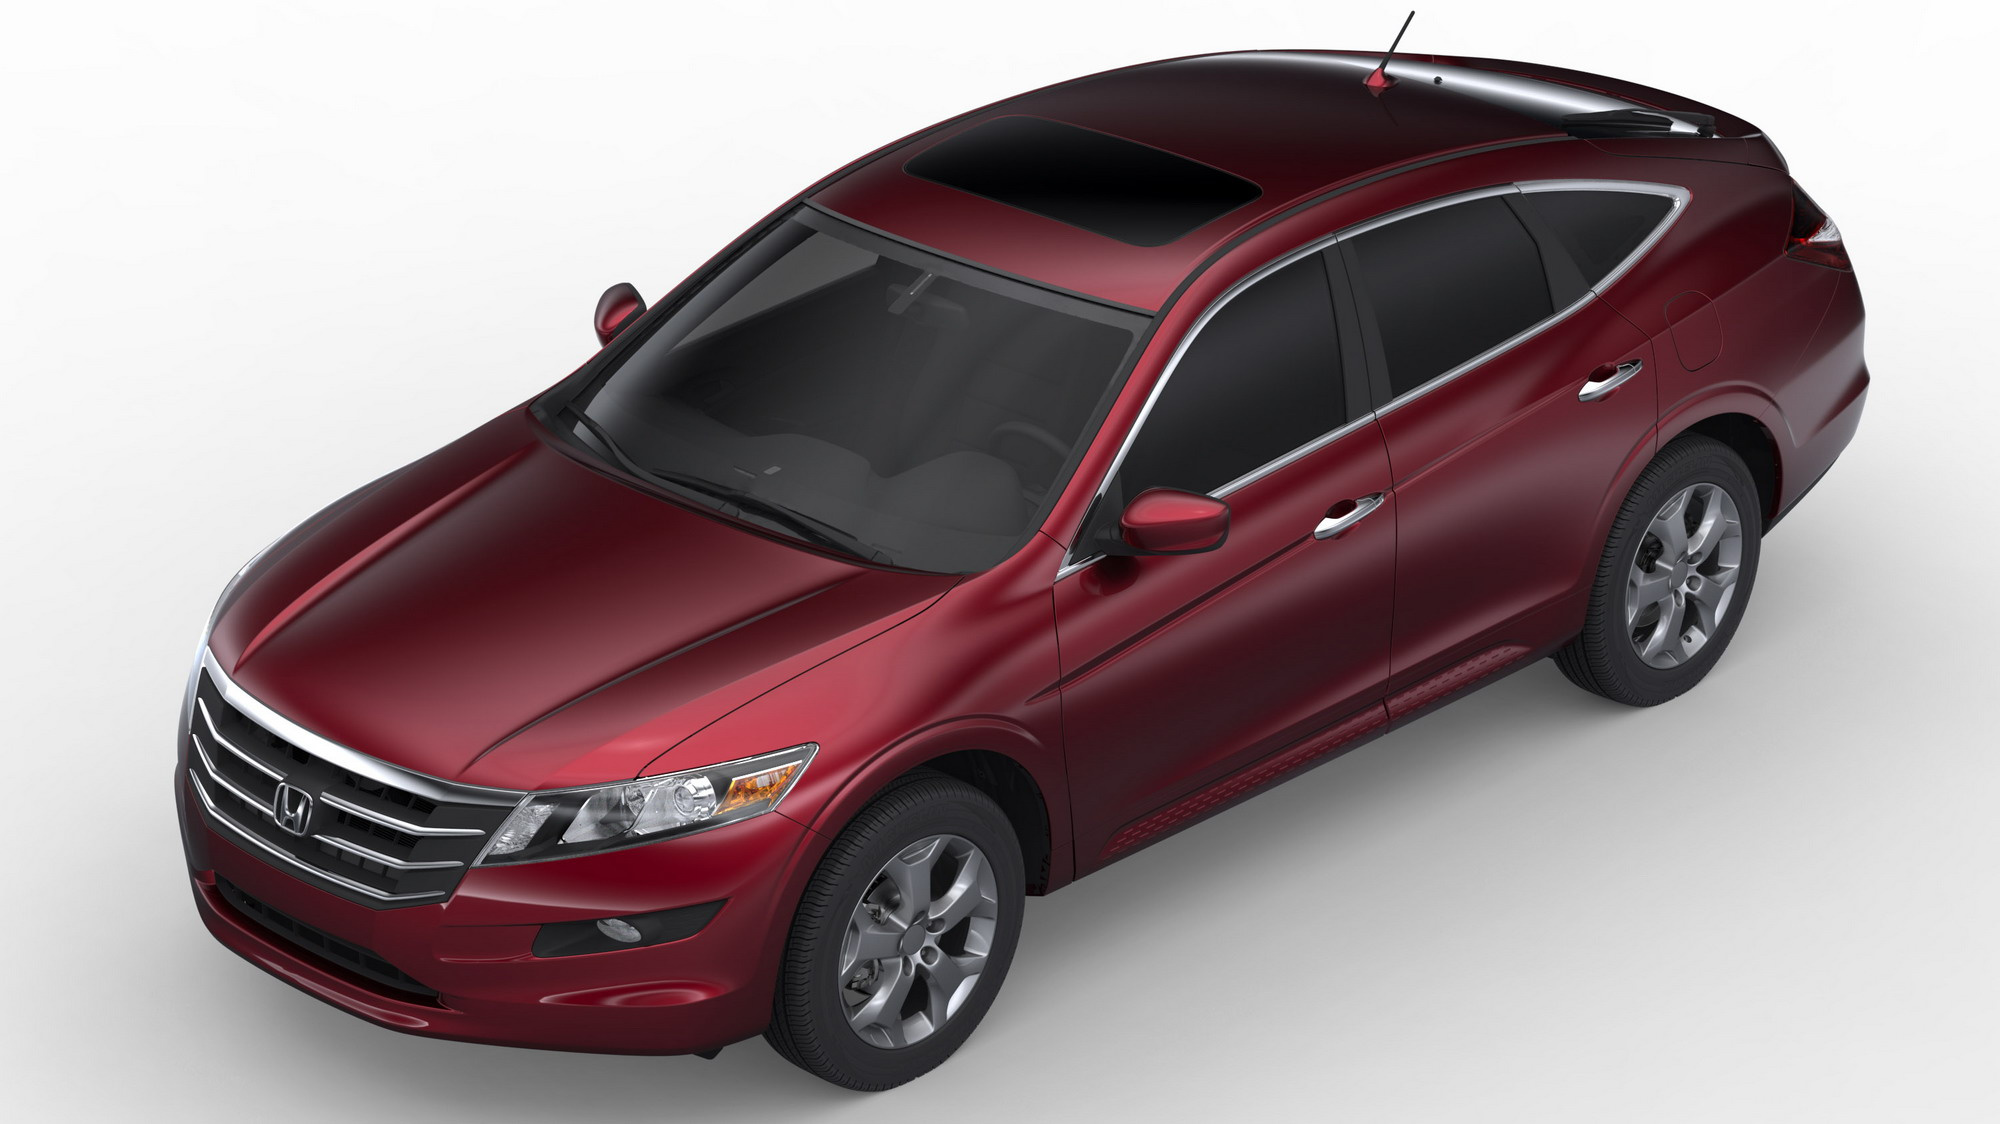 2011 honda accord crosstour gallery 385388 top speed. Black Bedroom Furniture Sets. Home Design Ideas